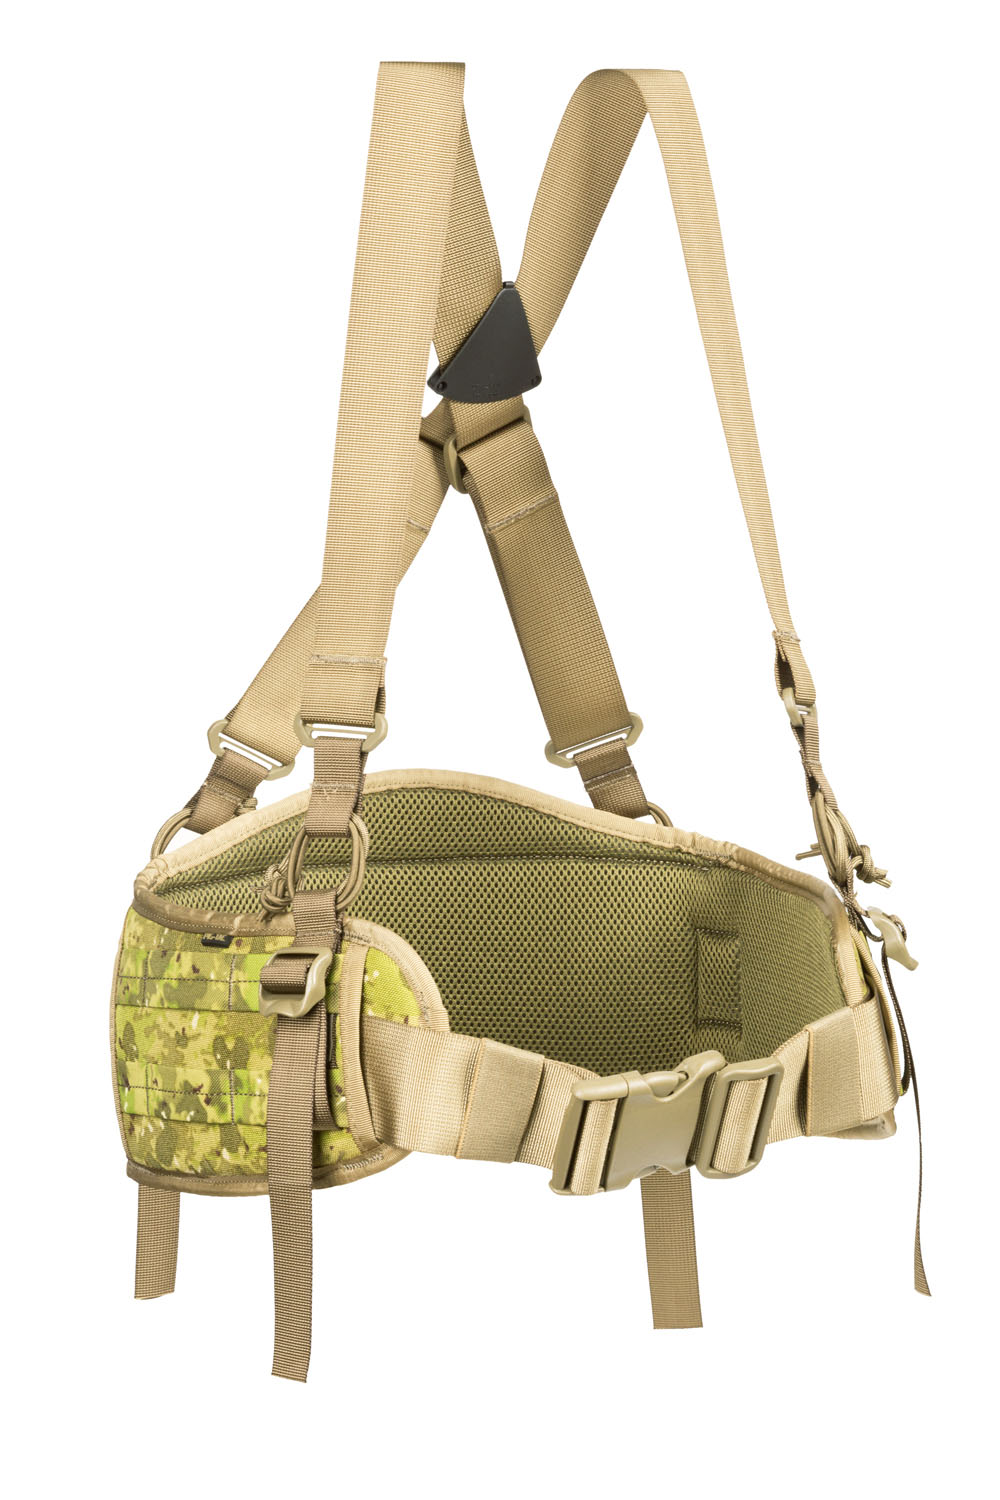 Padded MOLLE belt with suspenders